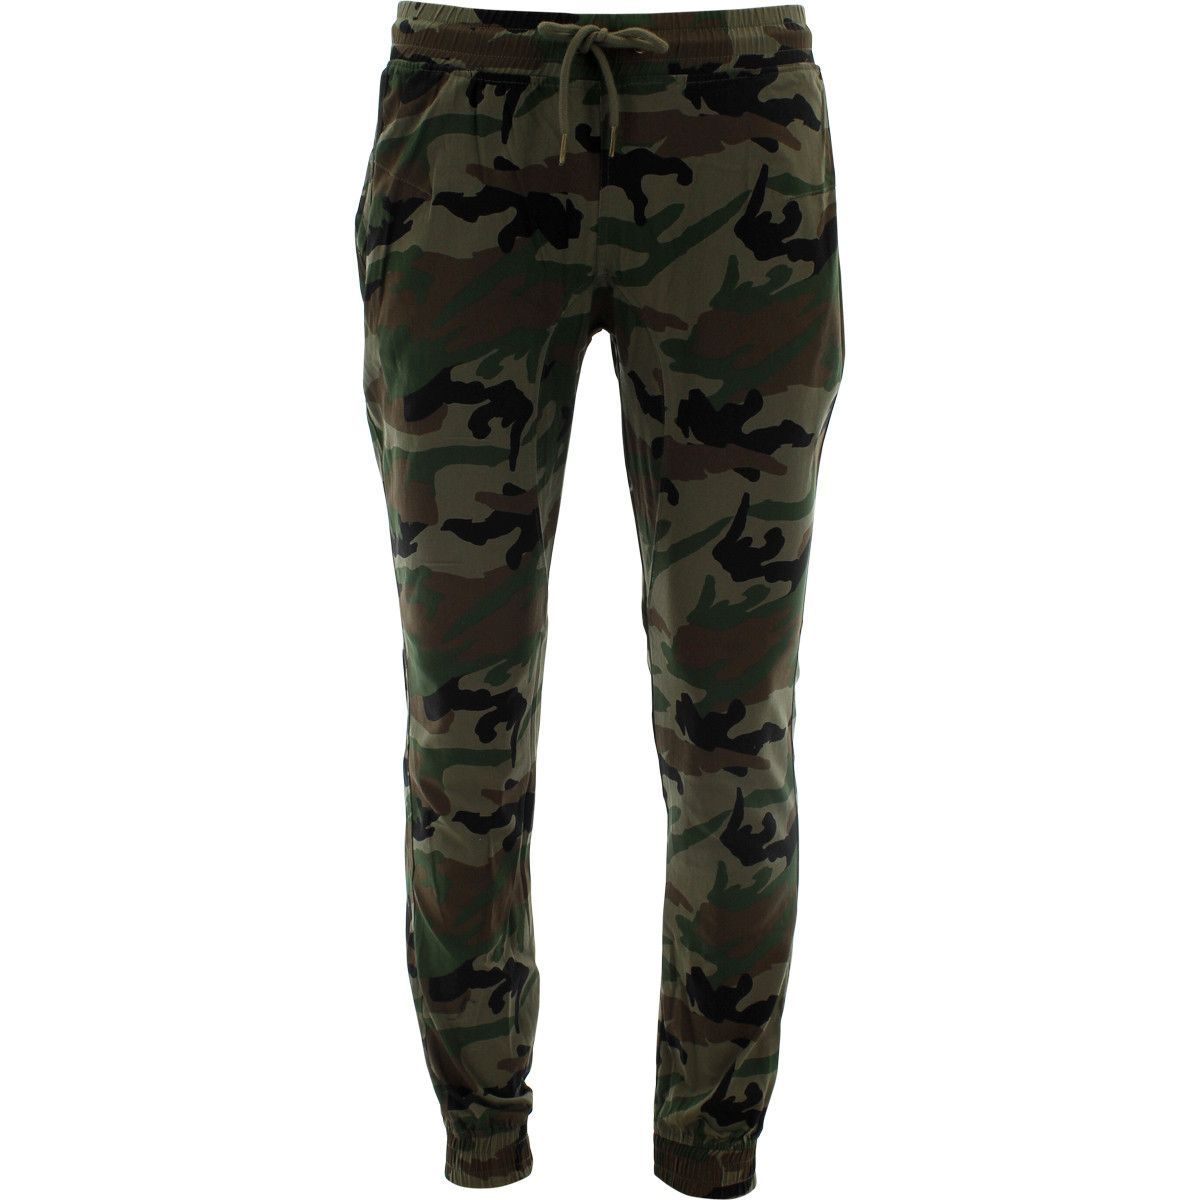 Get the best deals on camo joggers pants and save up to 70% off at Poshmark now! Whatever you're shopping for, we've got it.